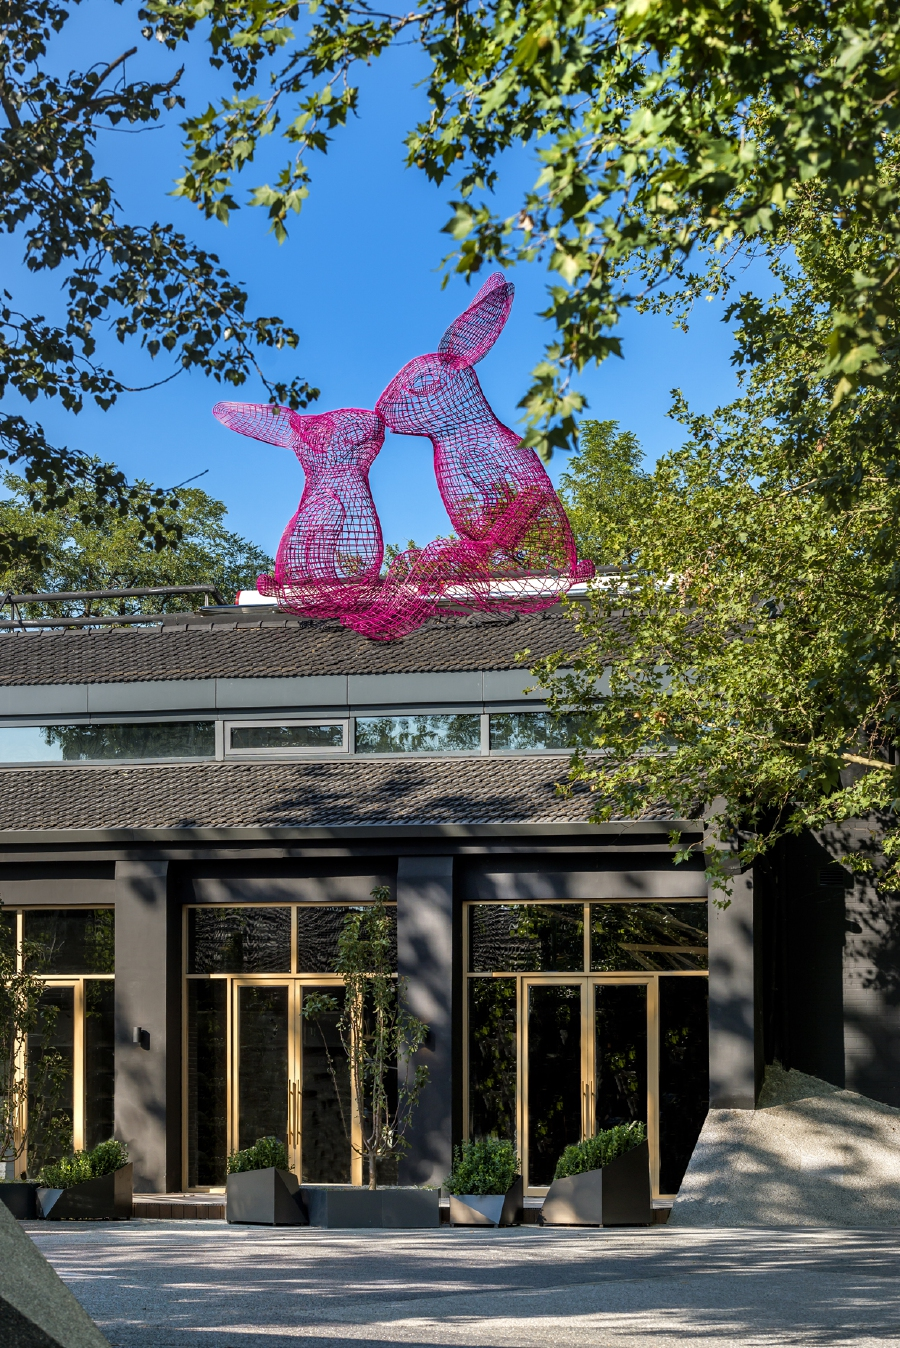 The kissing rabbits made out of wire mesh sit atop the Pink Rabbit Restaurant.